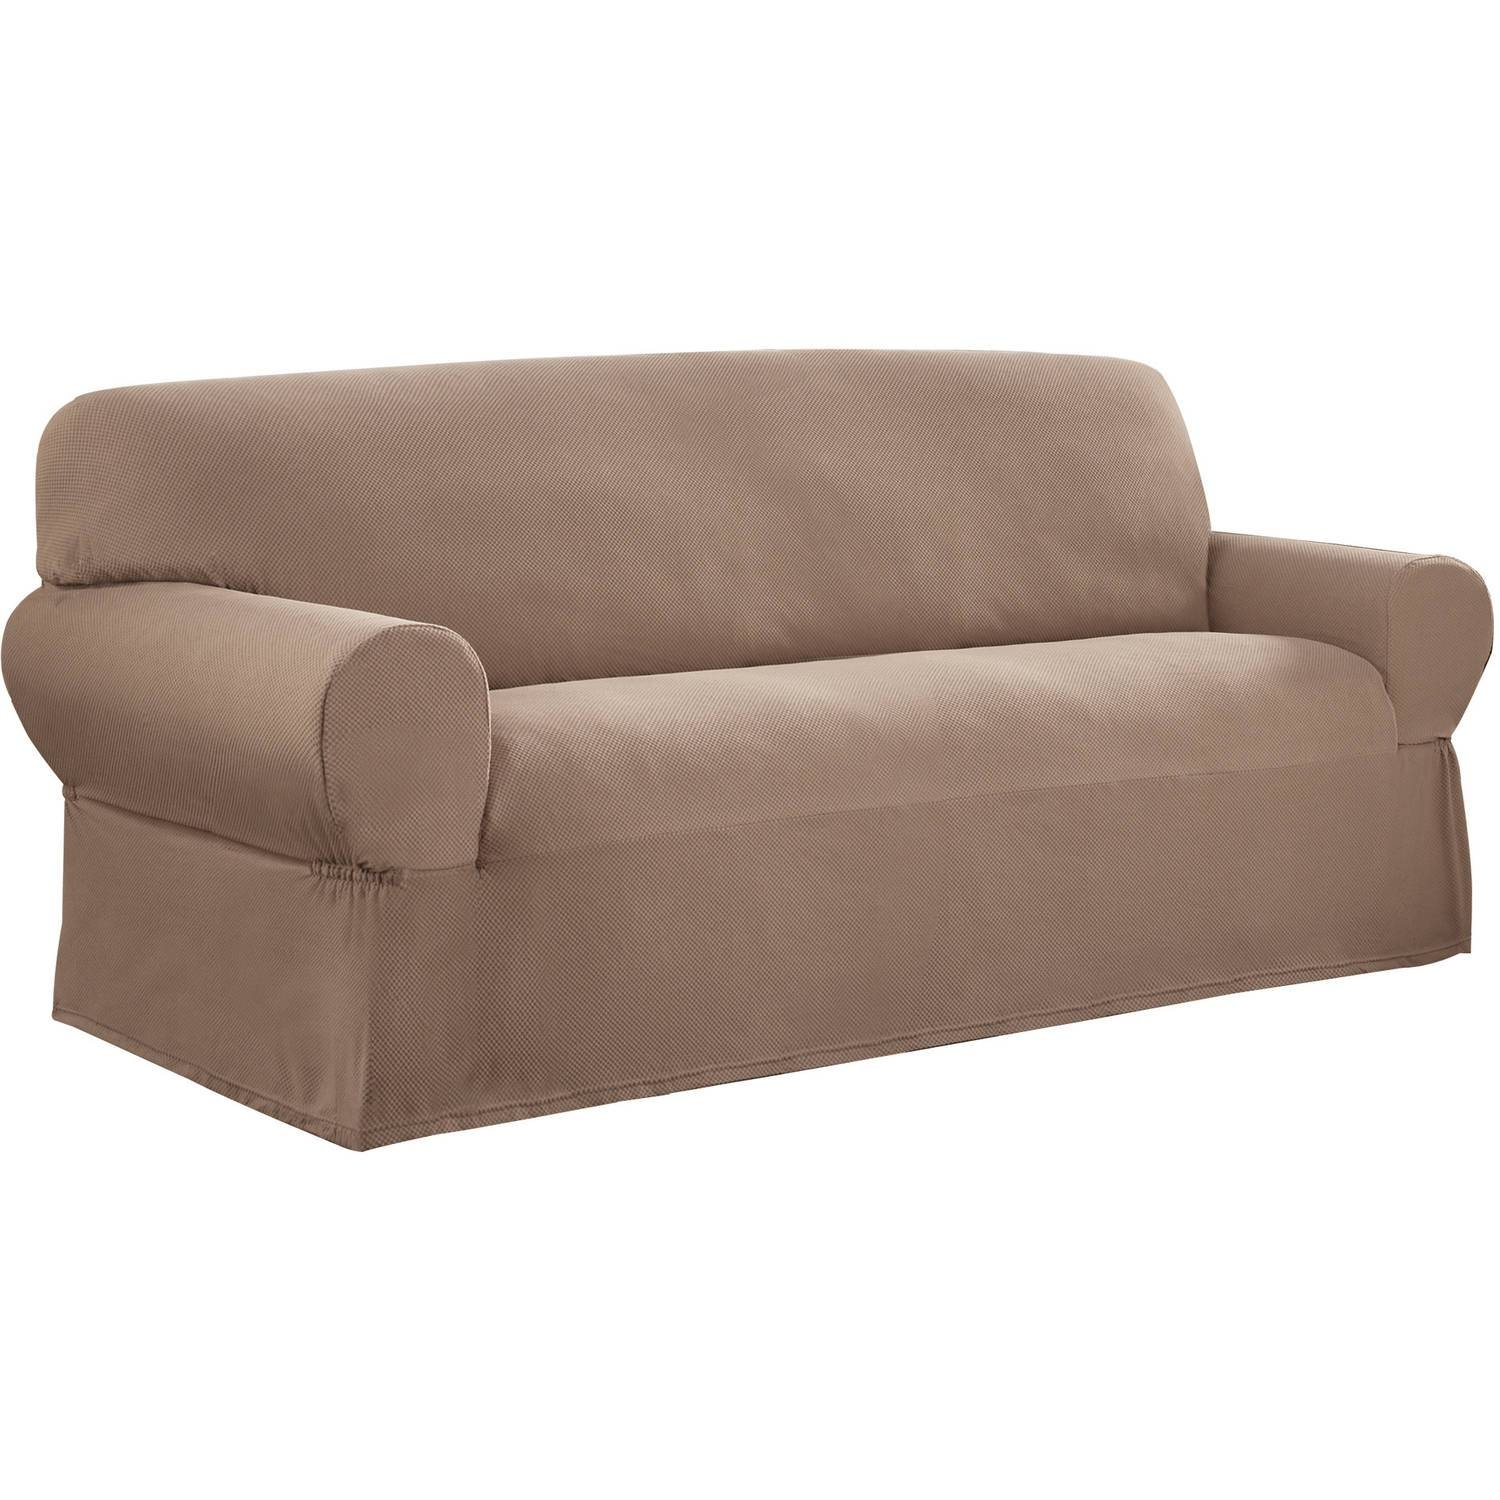 Mainstays 1-Piece Stretch Fabric Sofa Slipcover - Walmart with Stretch Slipcover Sofas (Image 8 of 15)